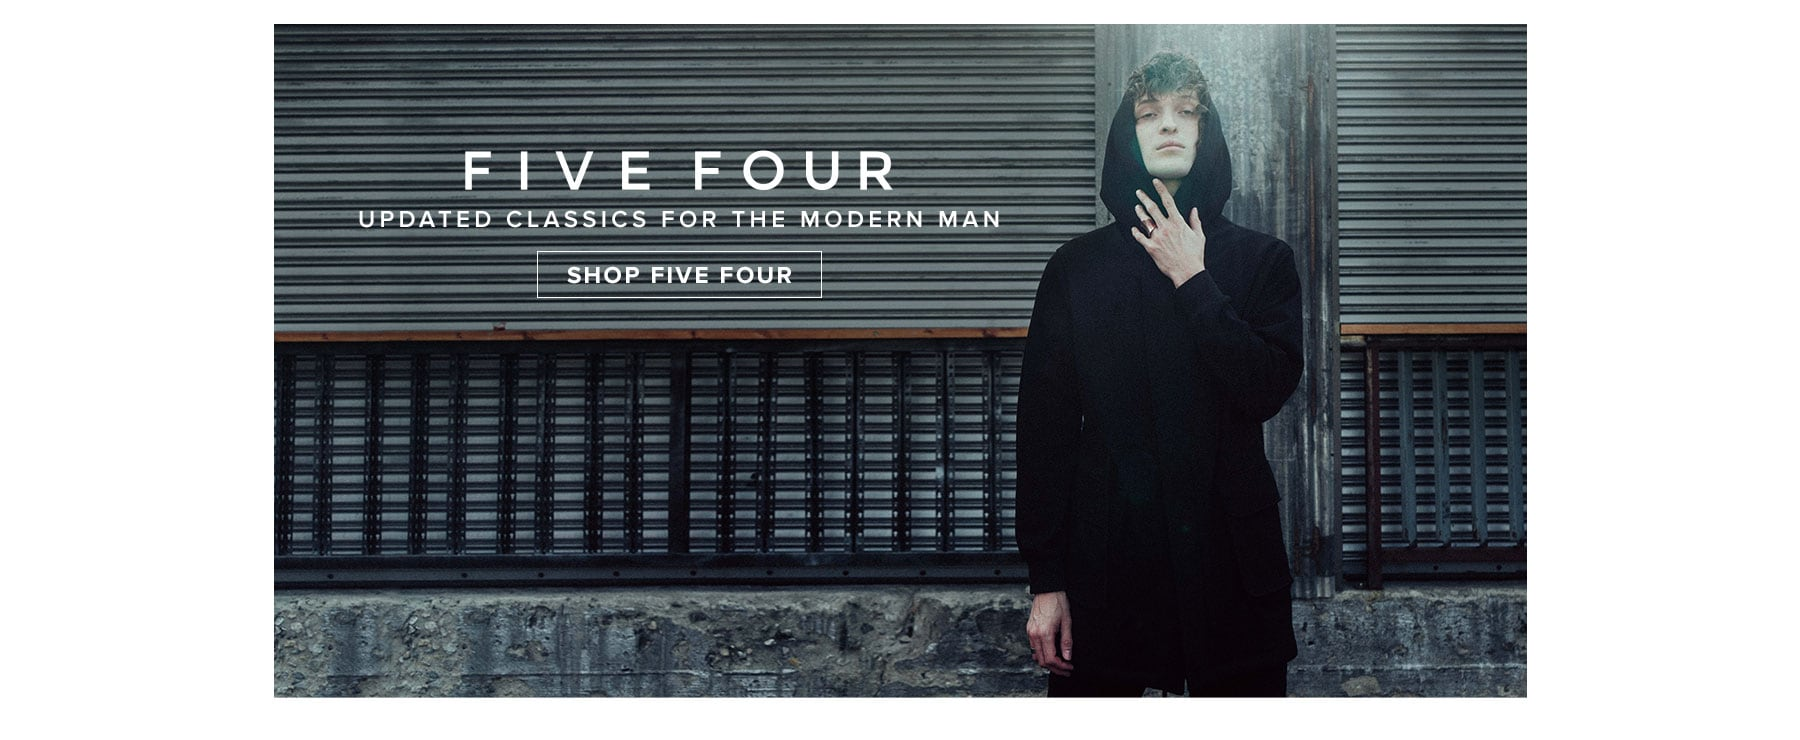 Five Four. Updated classics for the modern man. Shop Five Four.